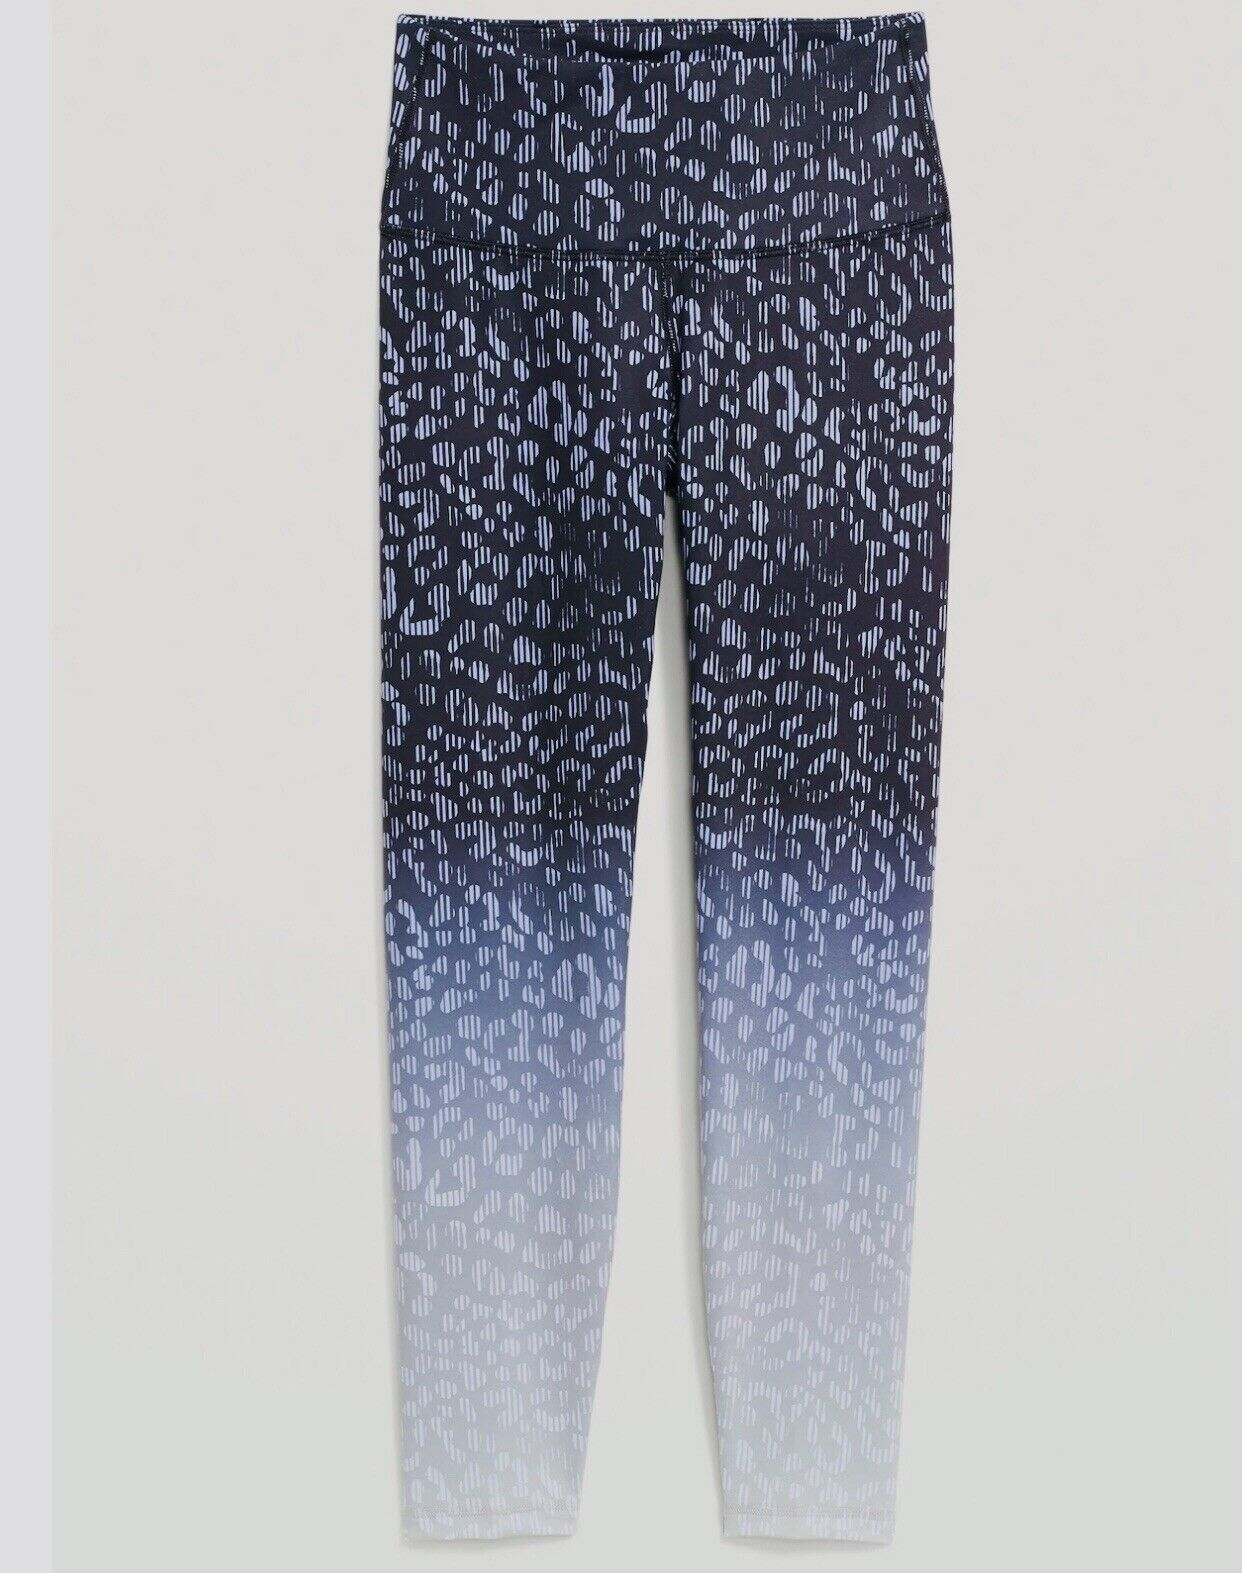 NWT: Old Navy High-Waisted Elevate 7/8 Length Leggings, Cheetah Blue, Size L